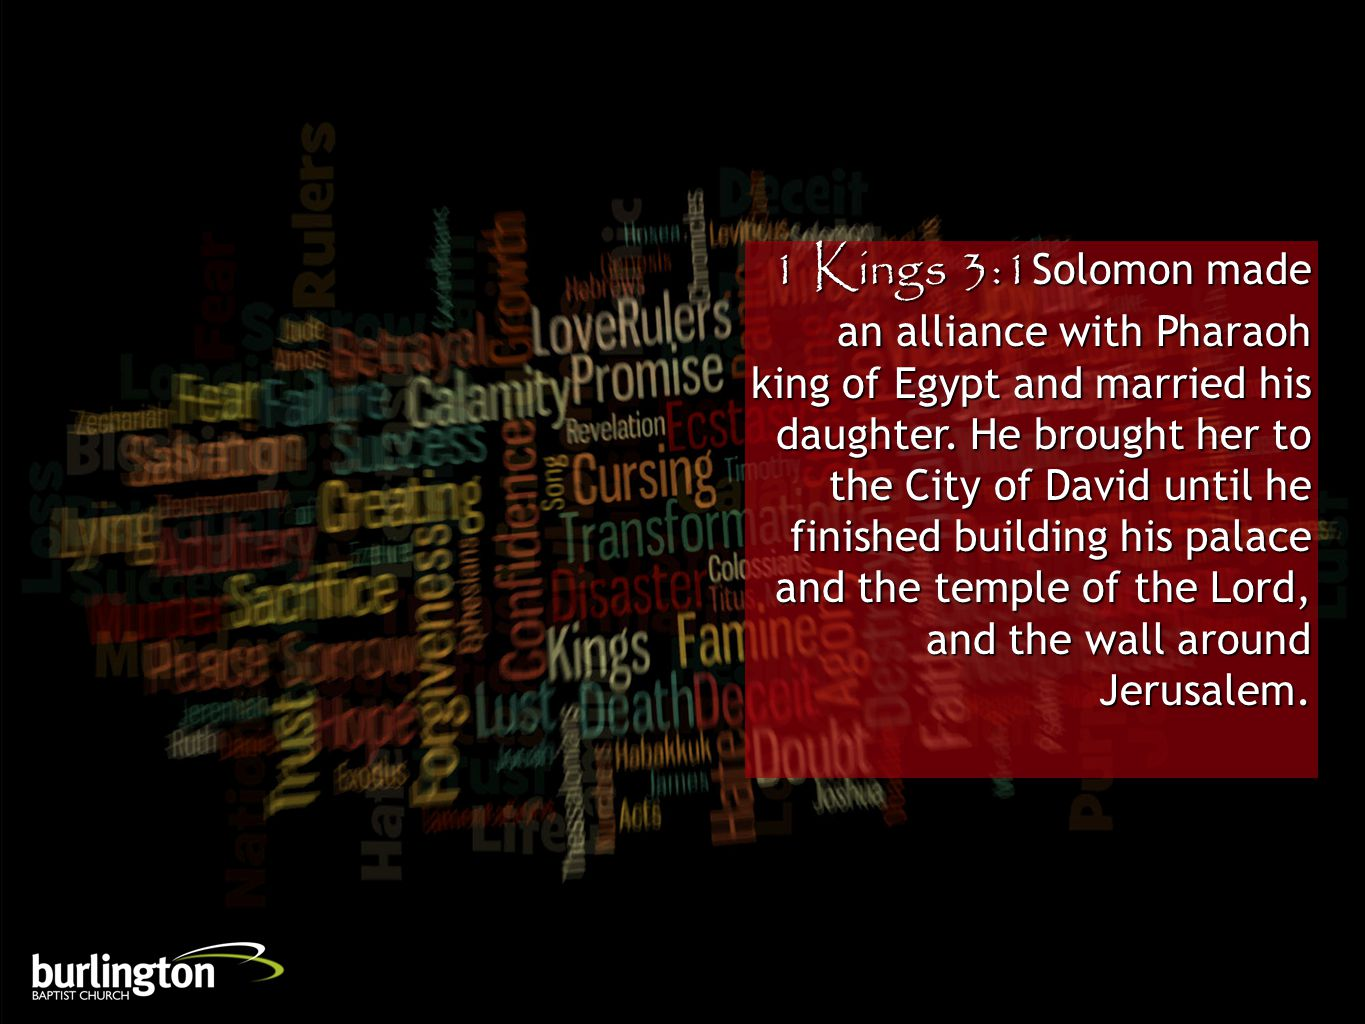 1 Kings 3:1Solomon made an alliance with Pharaoh king of Egypt and married his daughter. He brought her to the City of David until he finished buildin